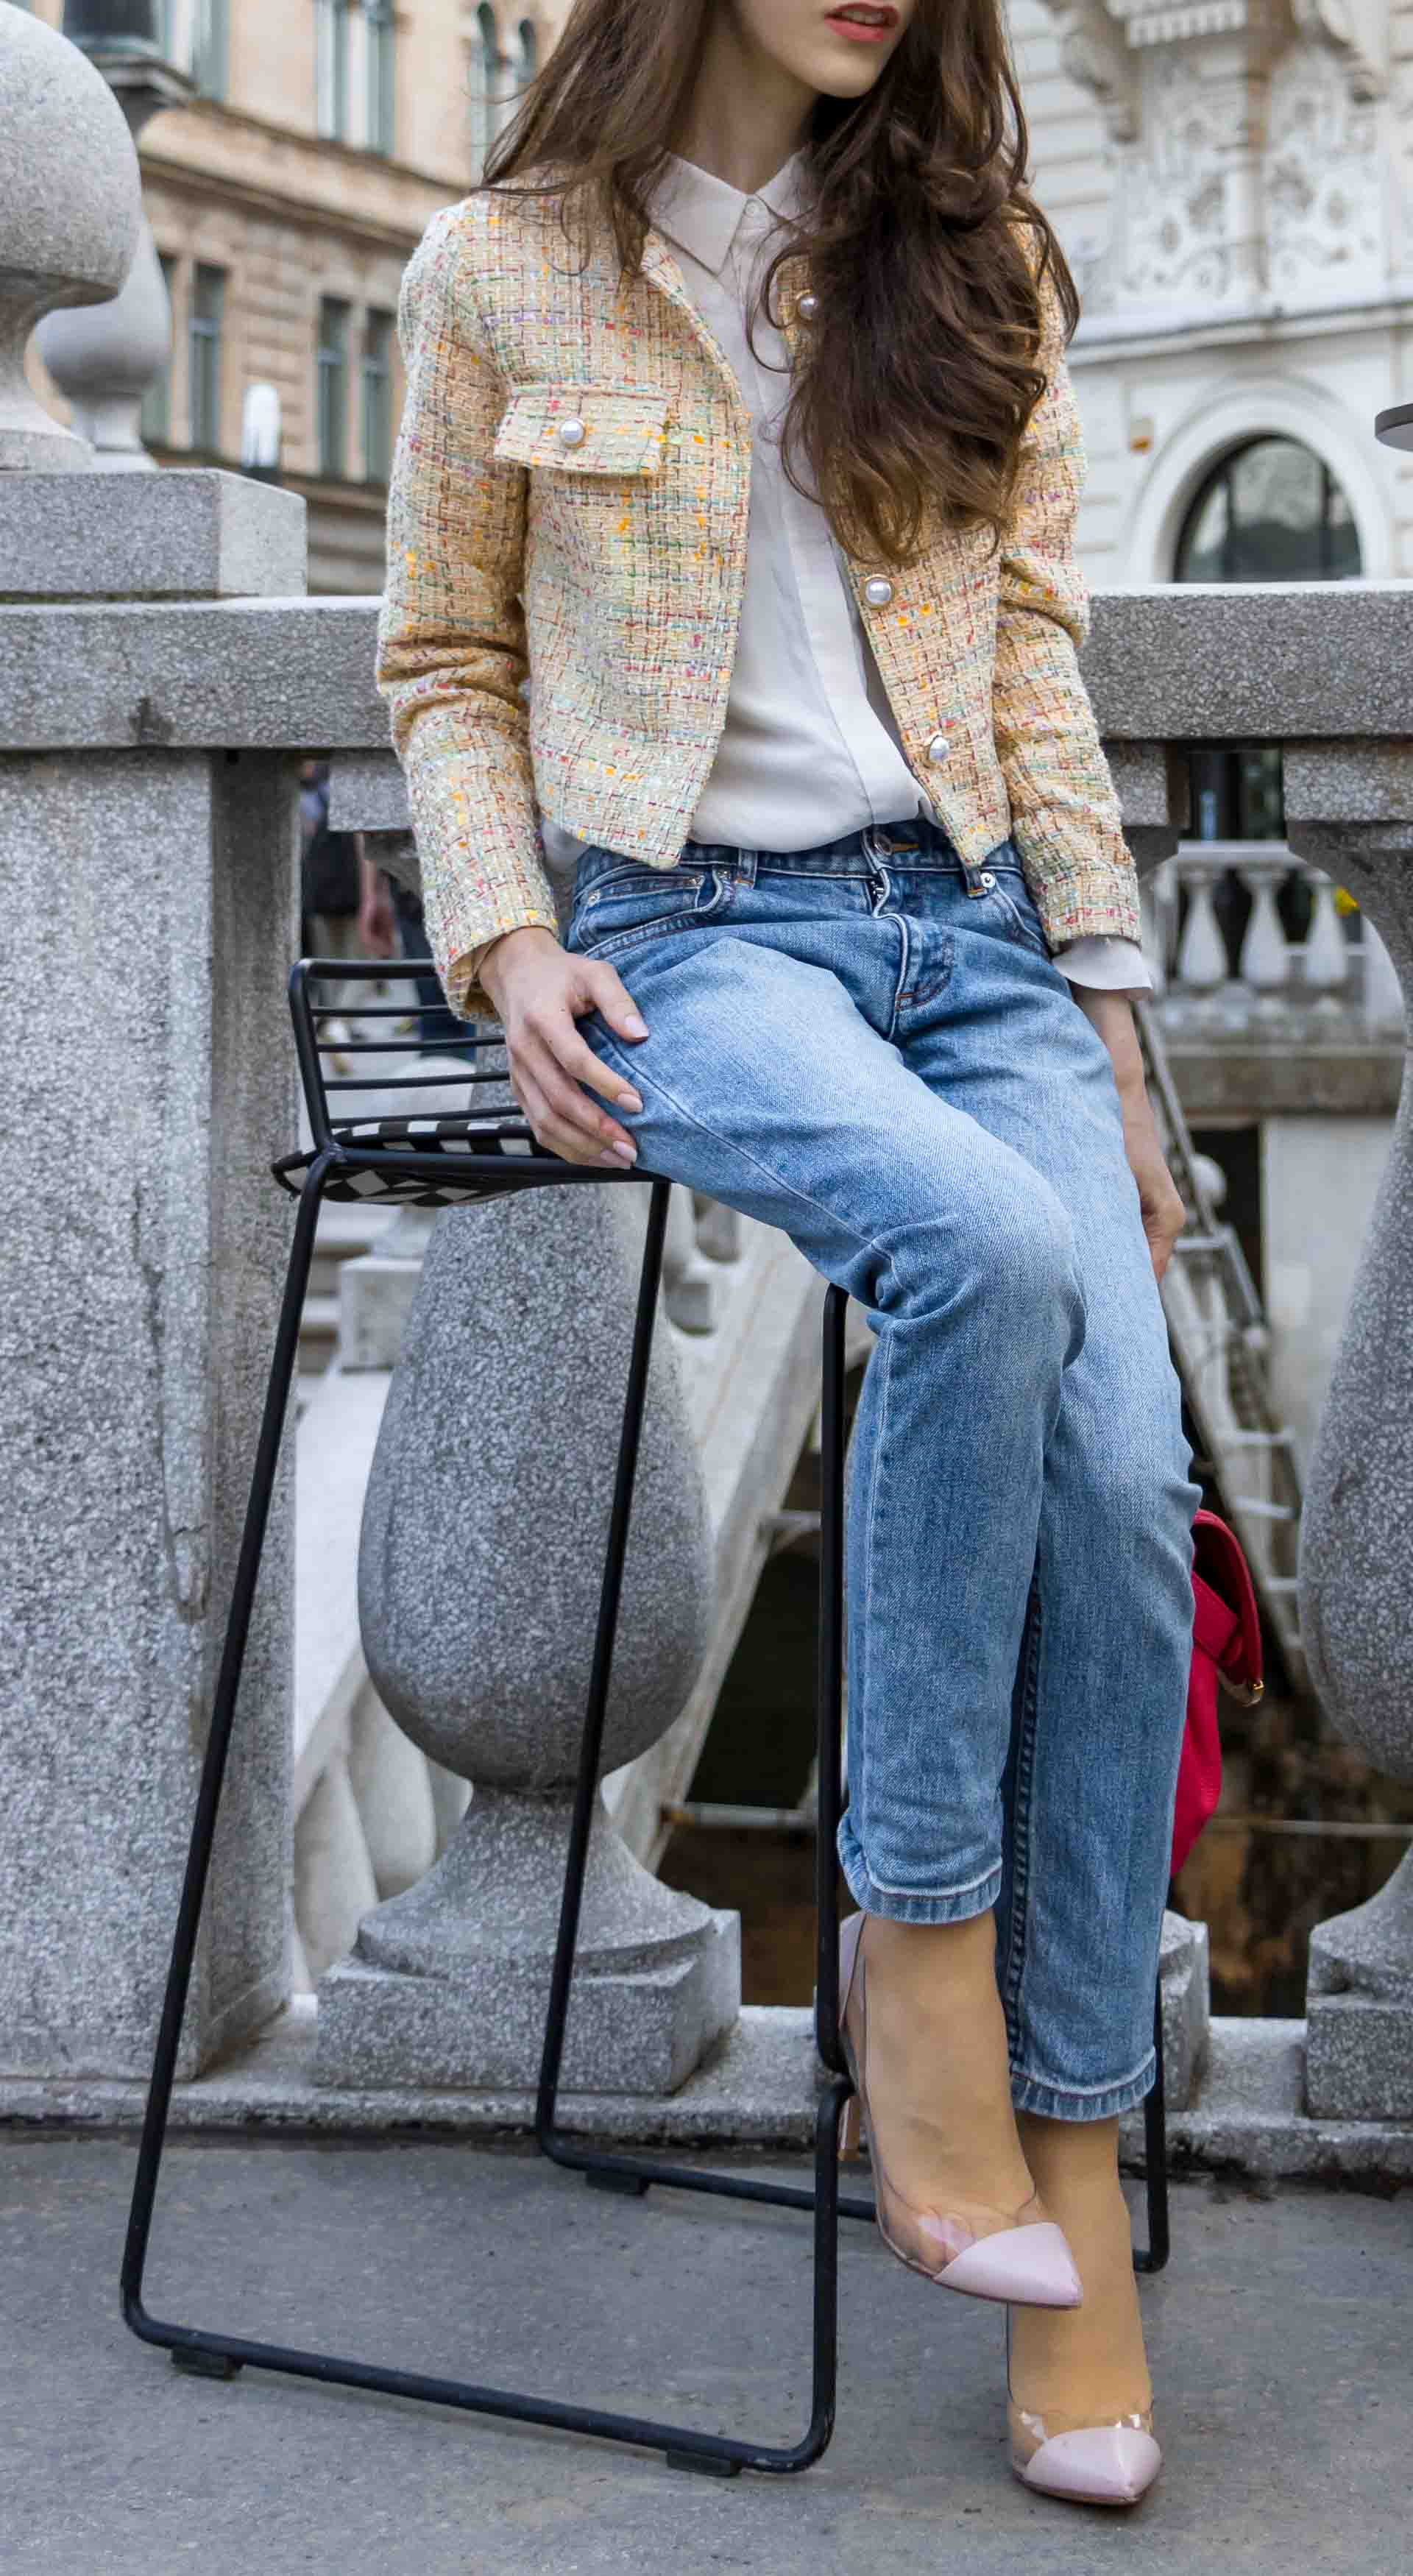 Veronika Lipar Fashion Blogger of Brunette from Wall Street dressed in chic casual everyday spring outfit, the yellow tweed jacket from Storets, blue jeans from A.P.C., blush Gianvito Rossi plexi pumps, pink top handle bag and organza white sitting on a bar stole outdoors